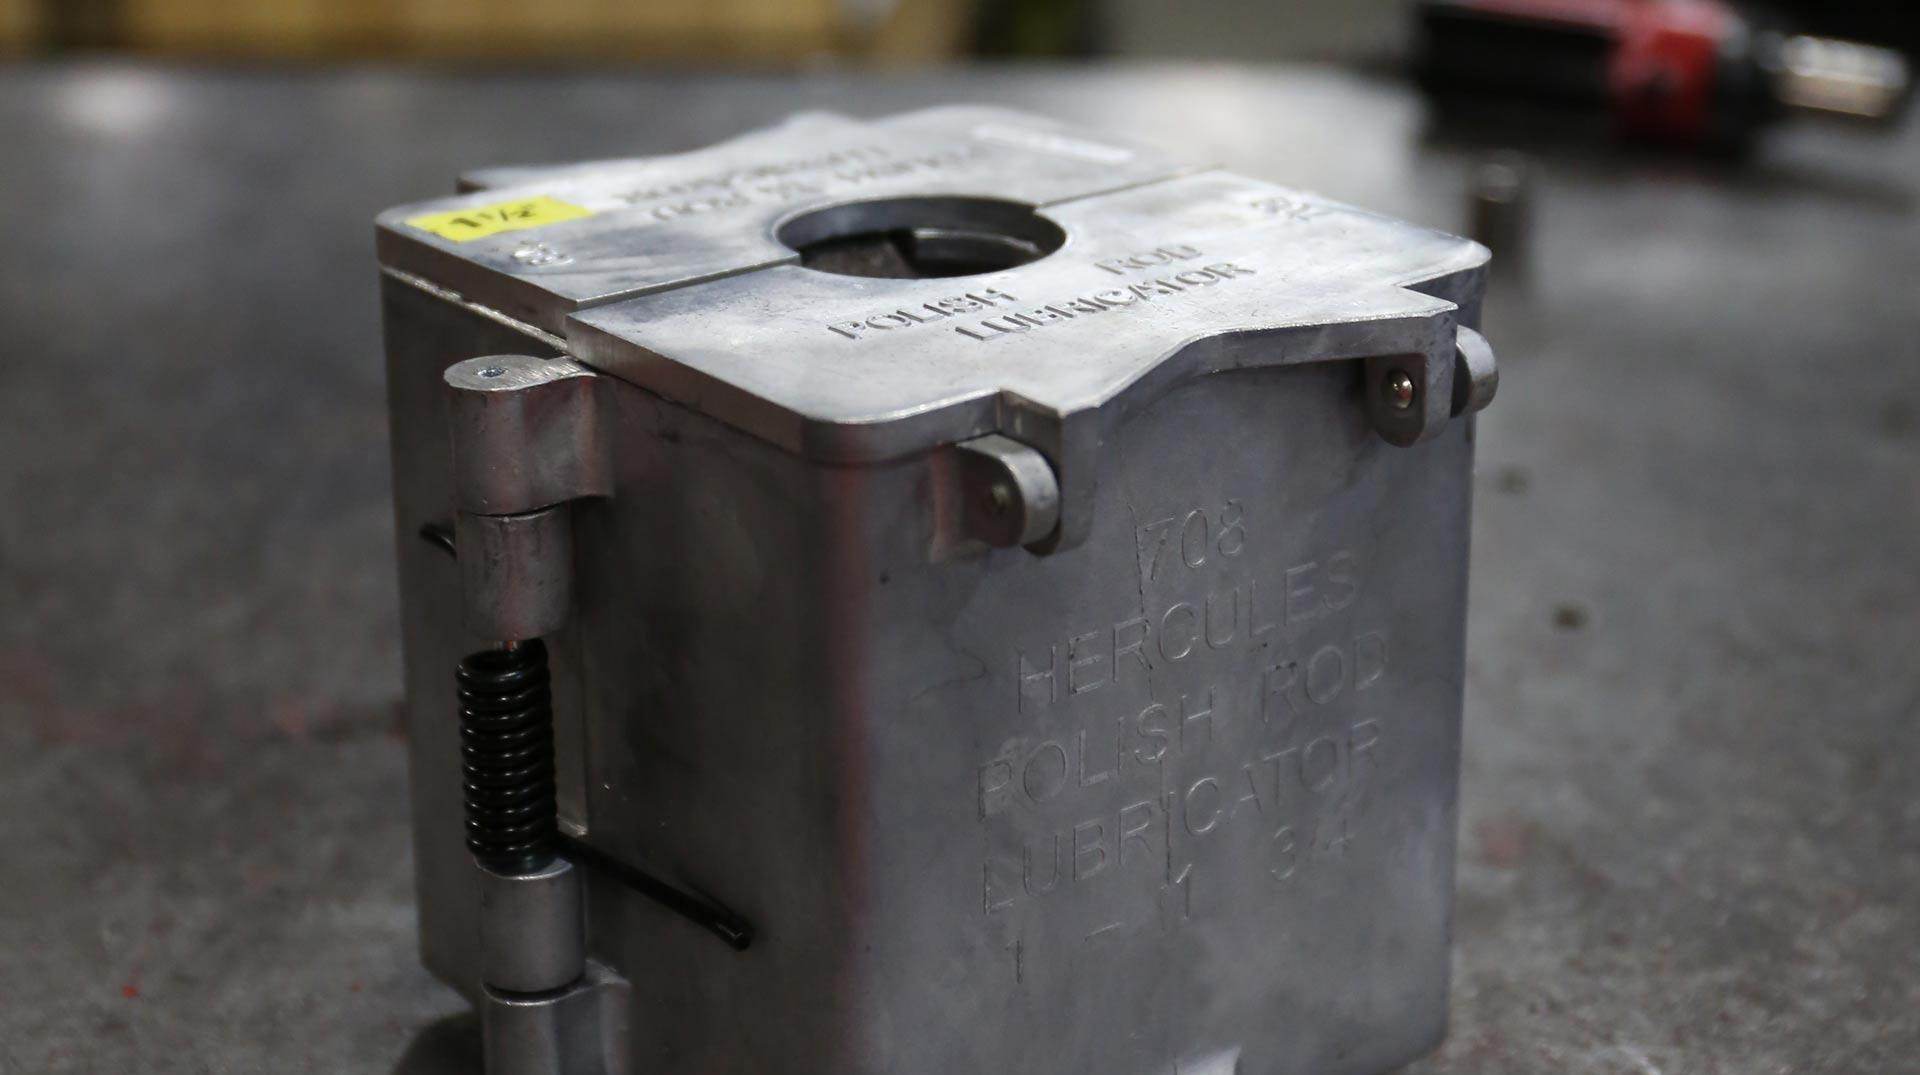 A side view of a Hercules Lubricator